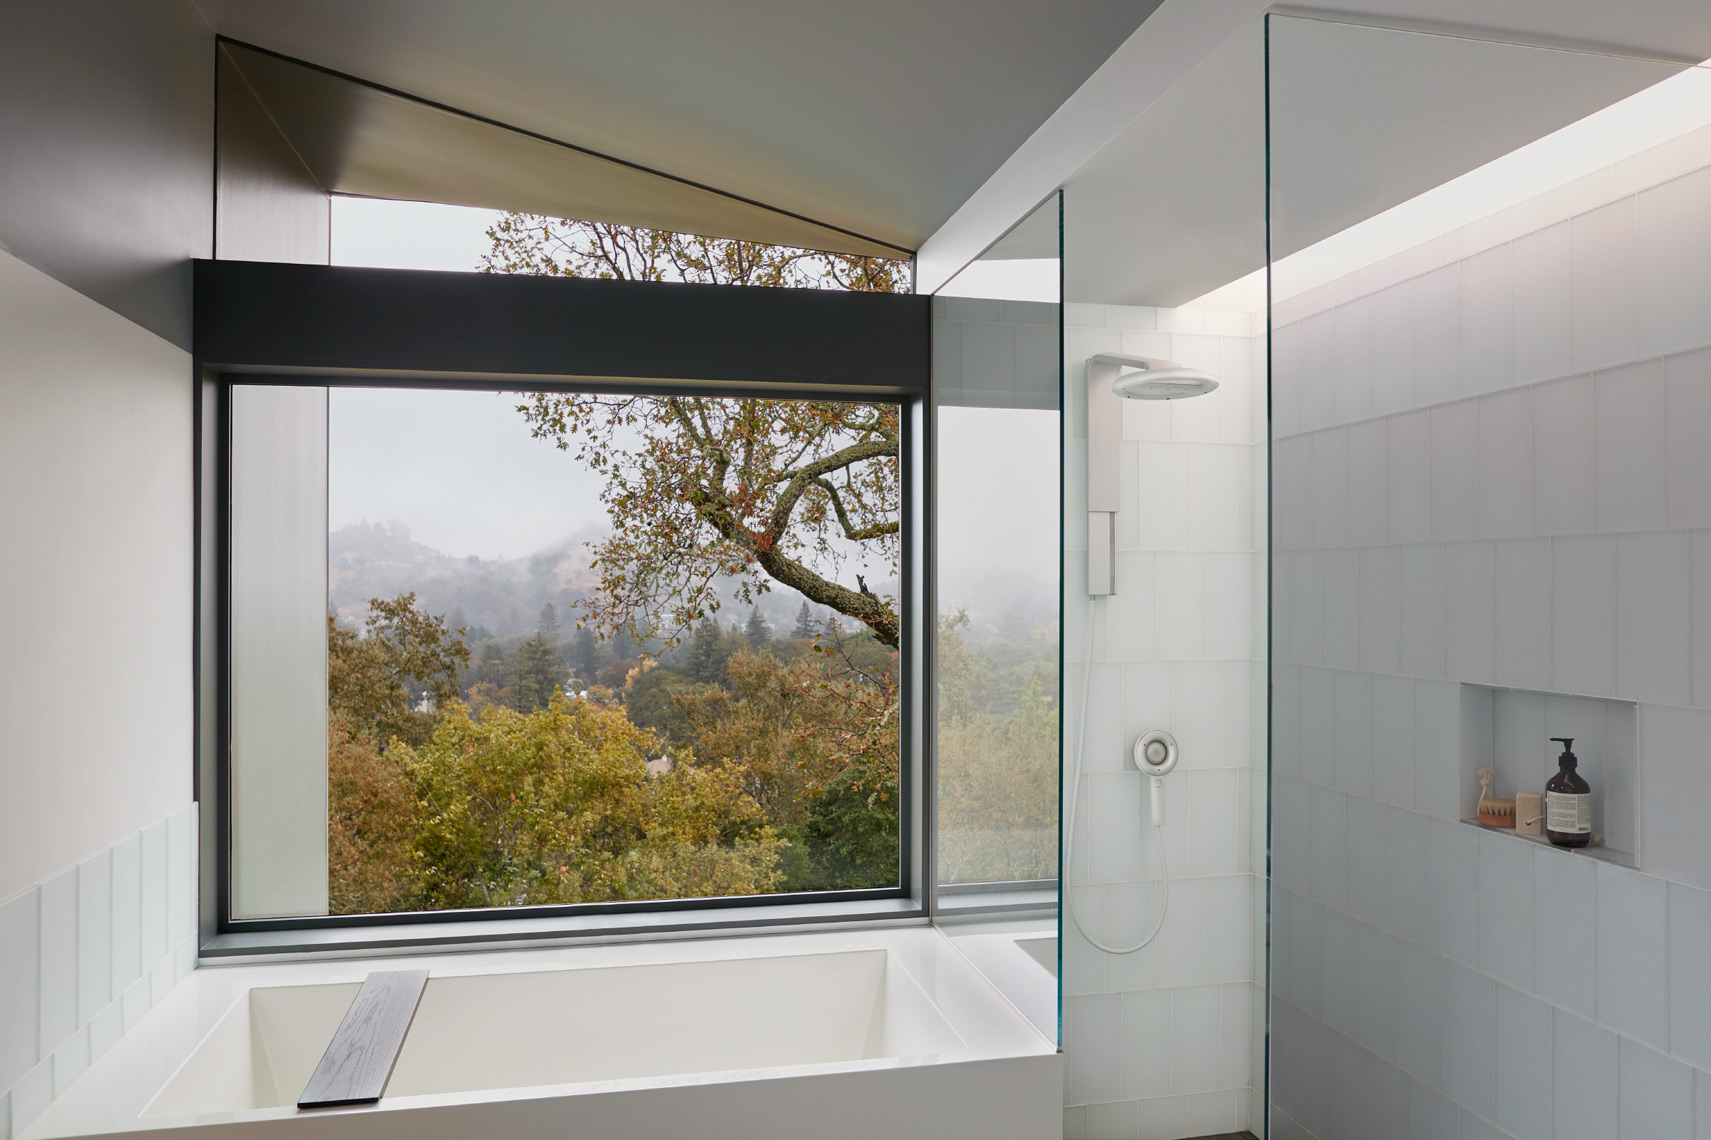 bathroom in modern-art house with white tiles and white bathtub and window view of forest during fall